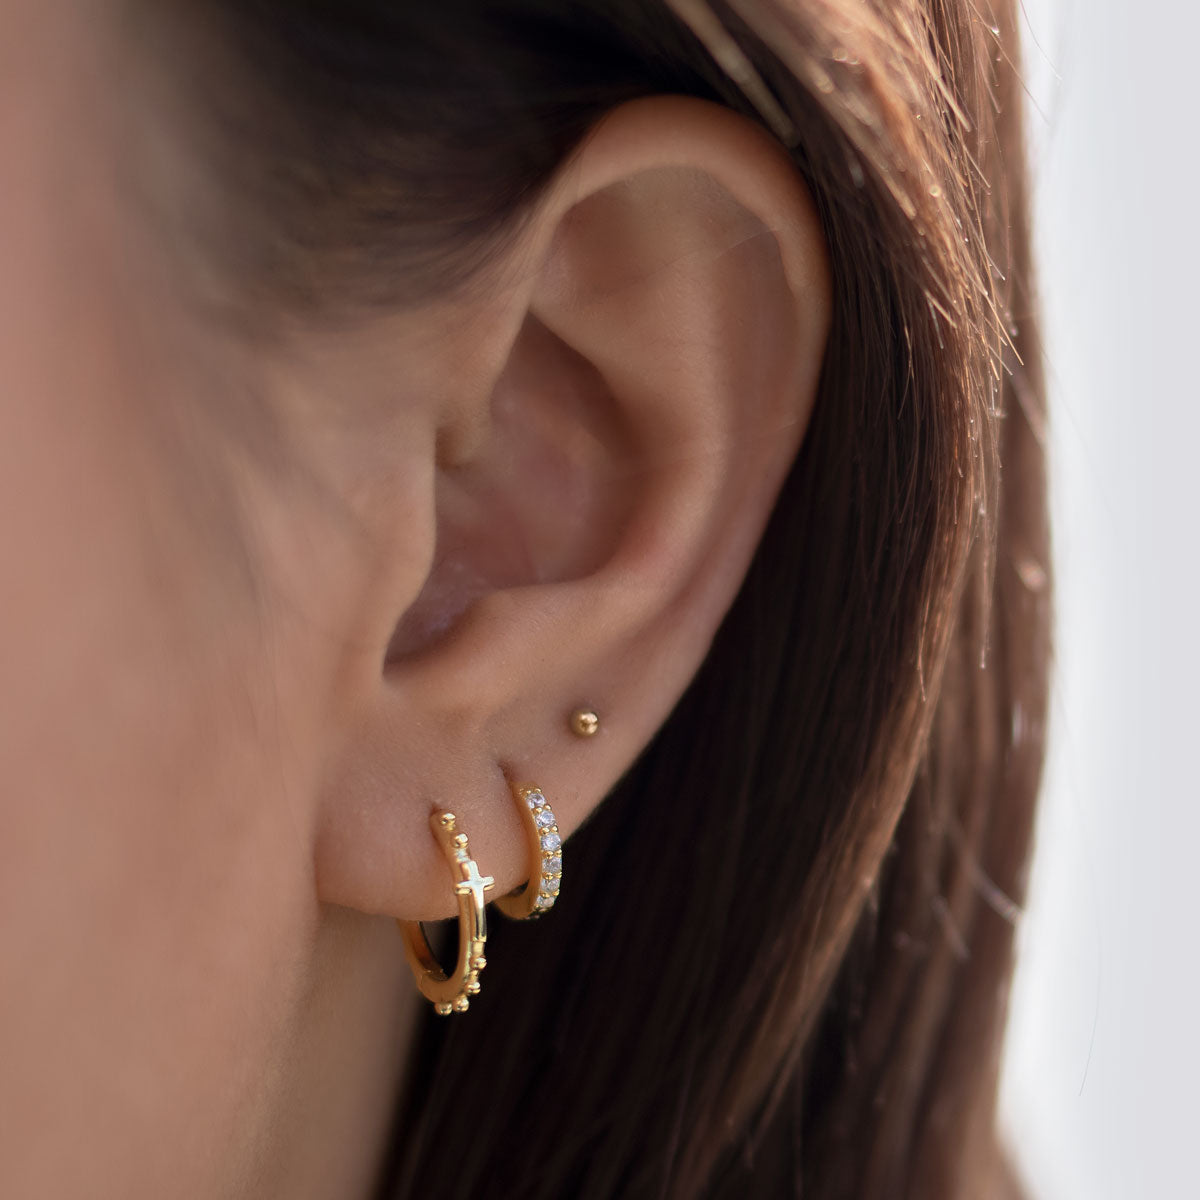 caption: Model wearing 3mm on third hole